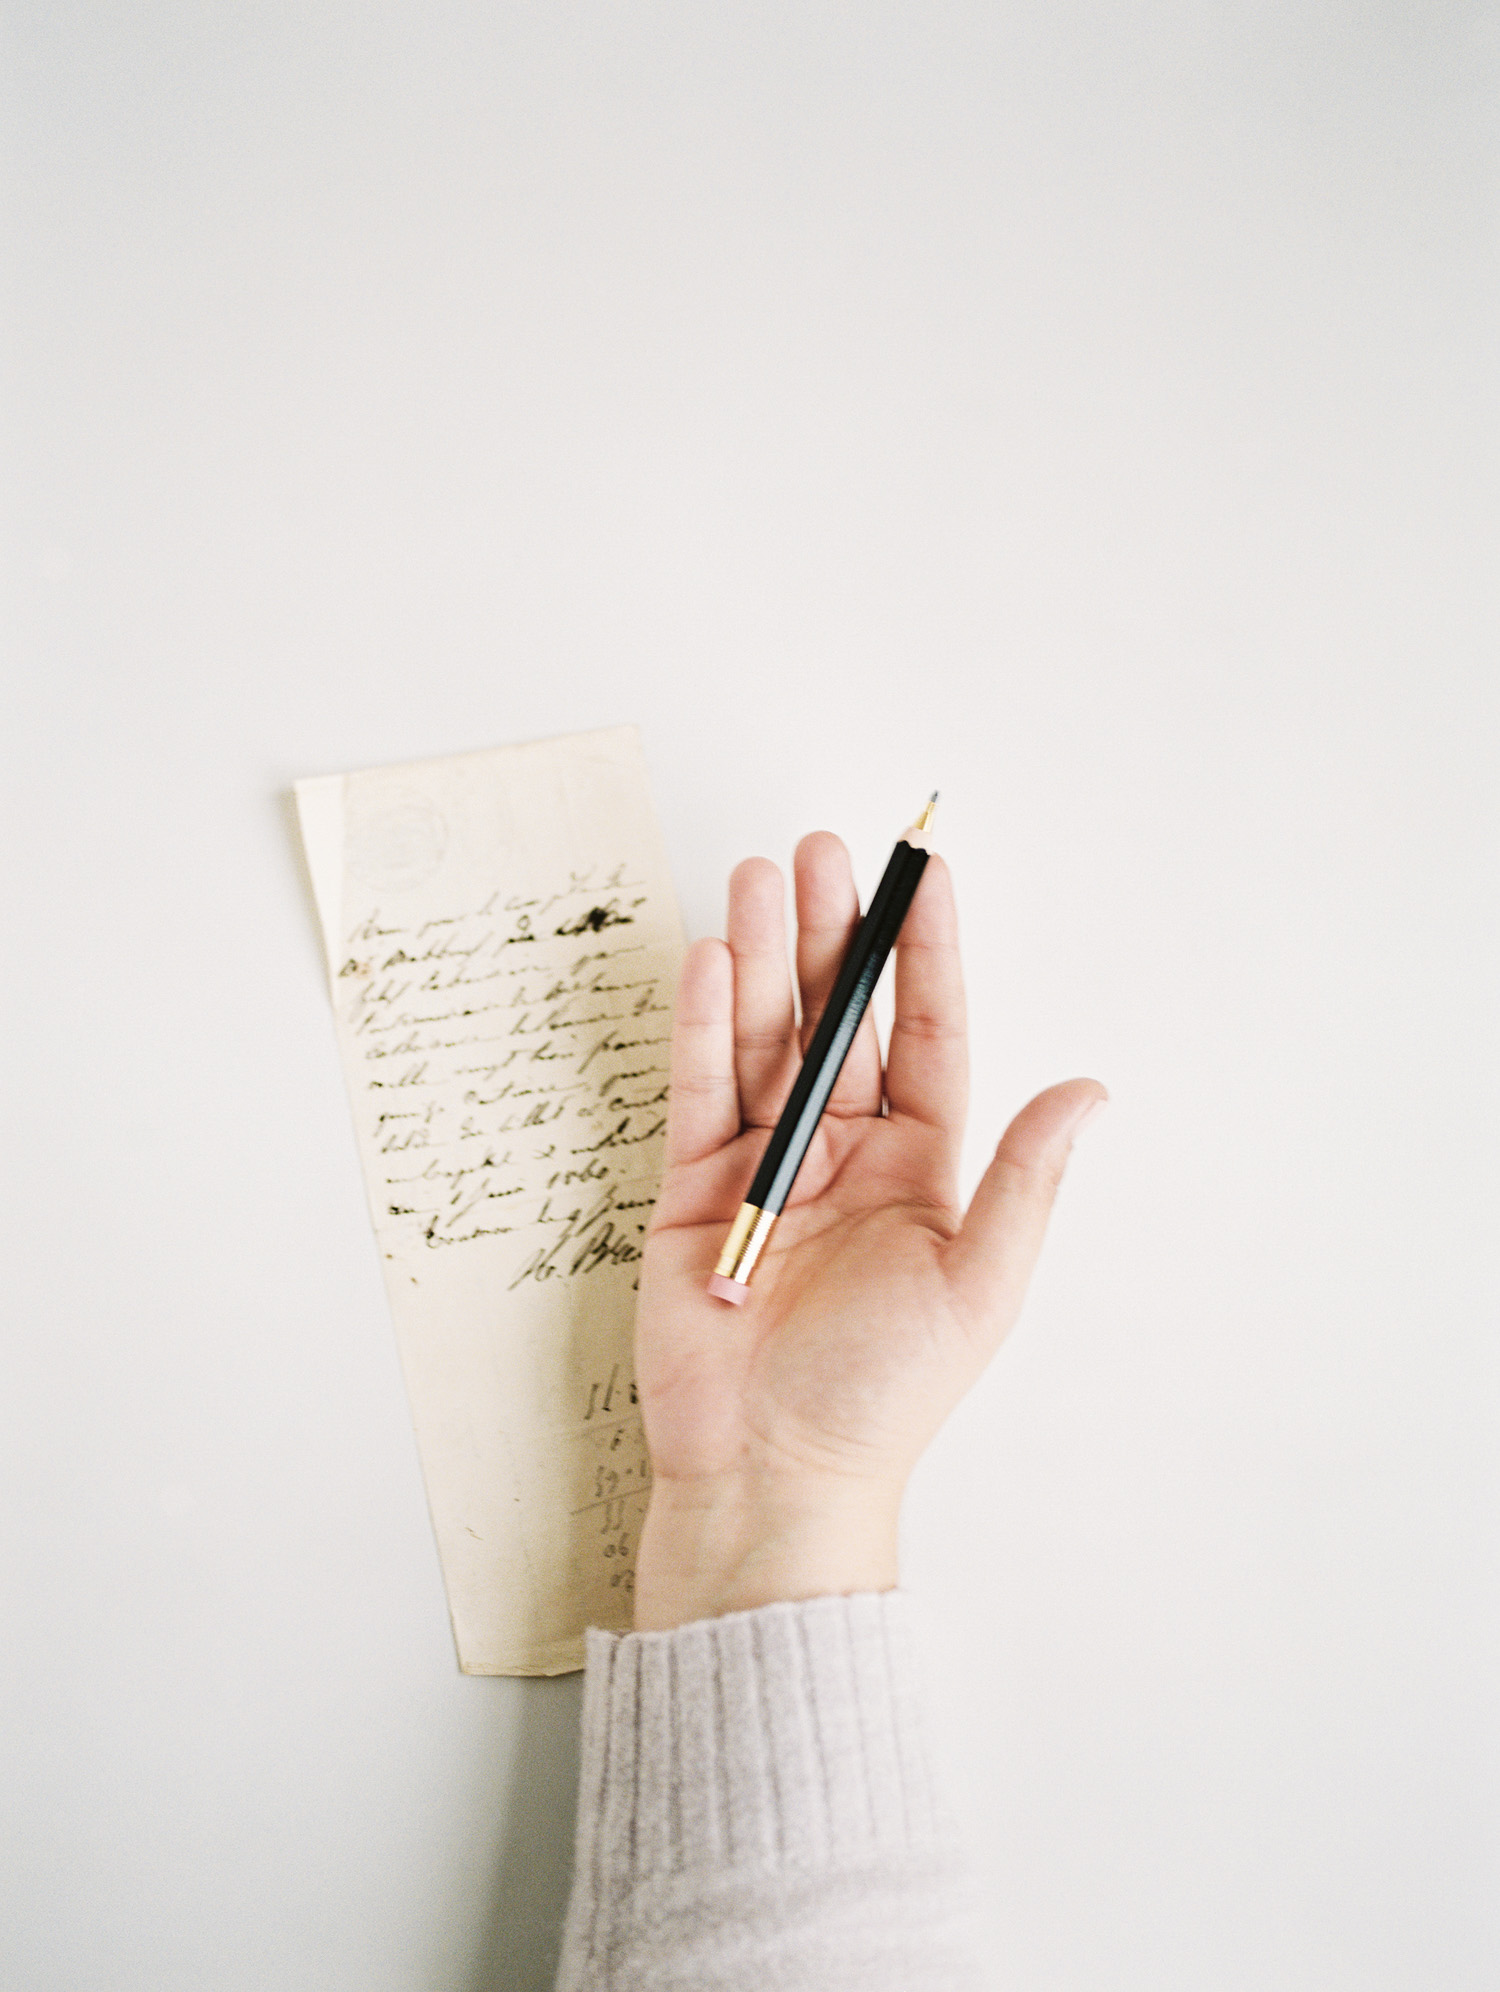 a pencil rests in an open hand next to an antique handwritten note during a brand photoshoot in Michigan